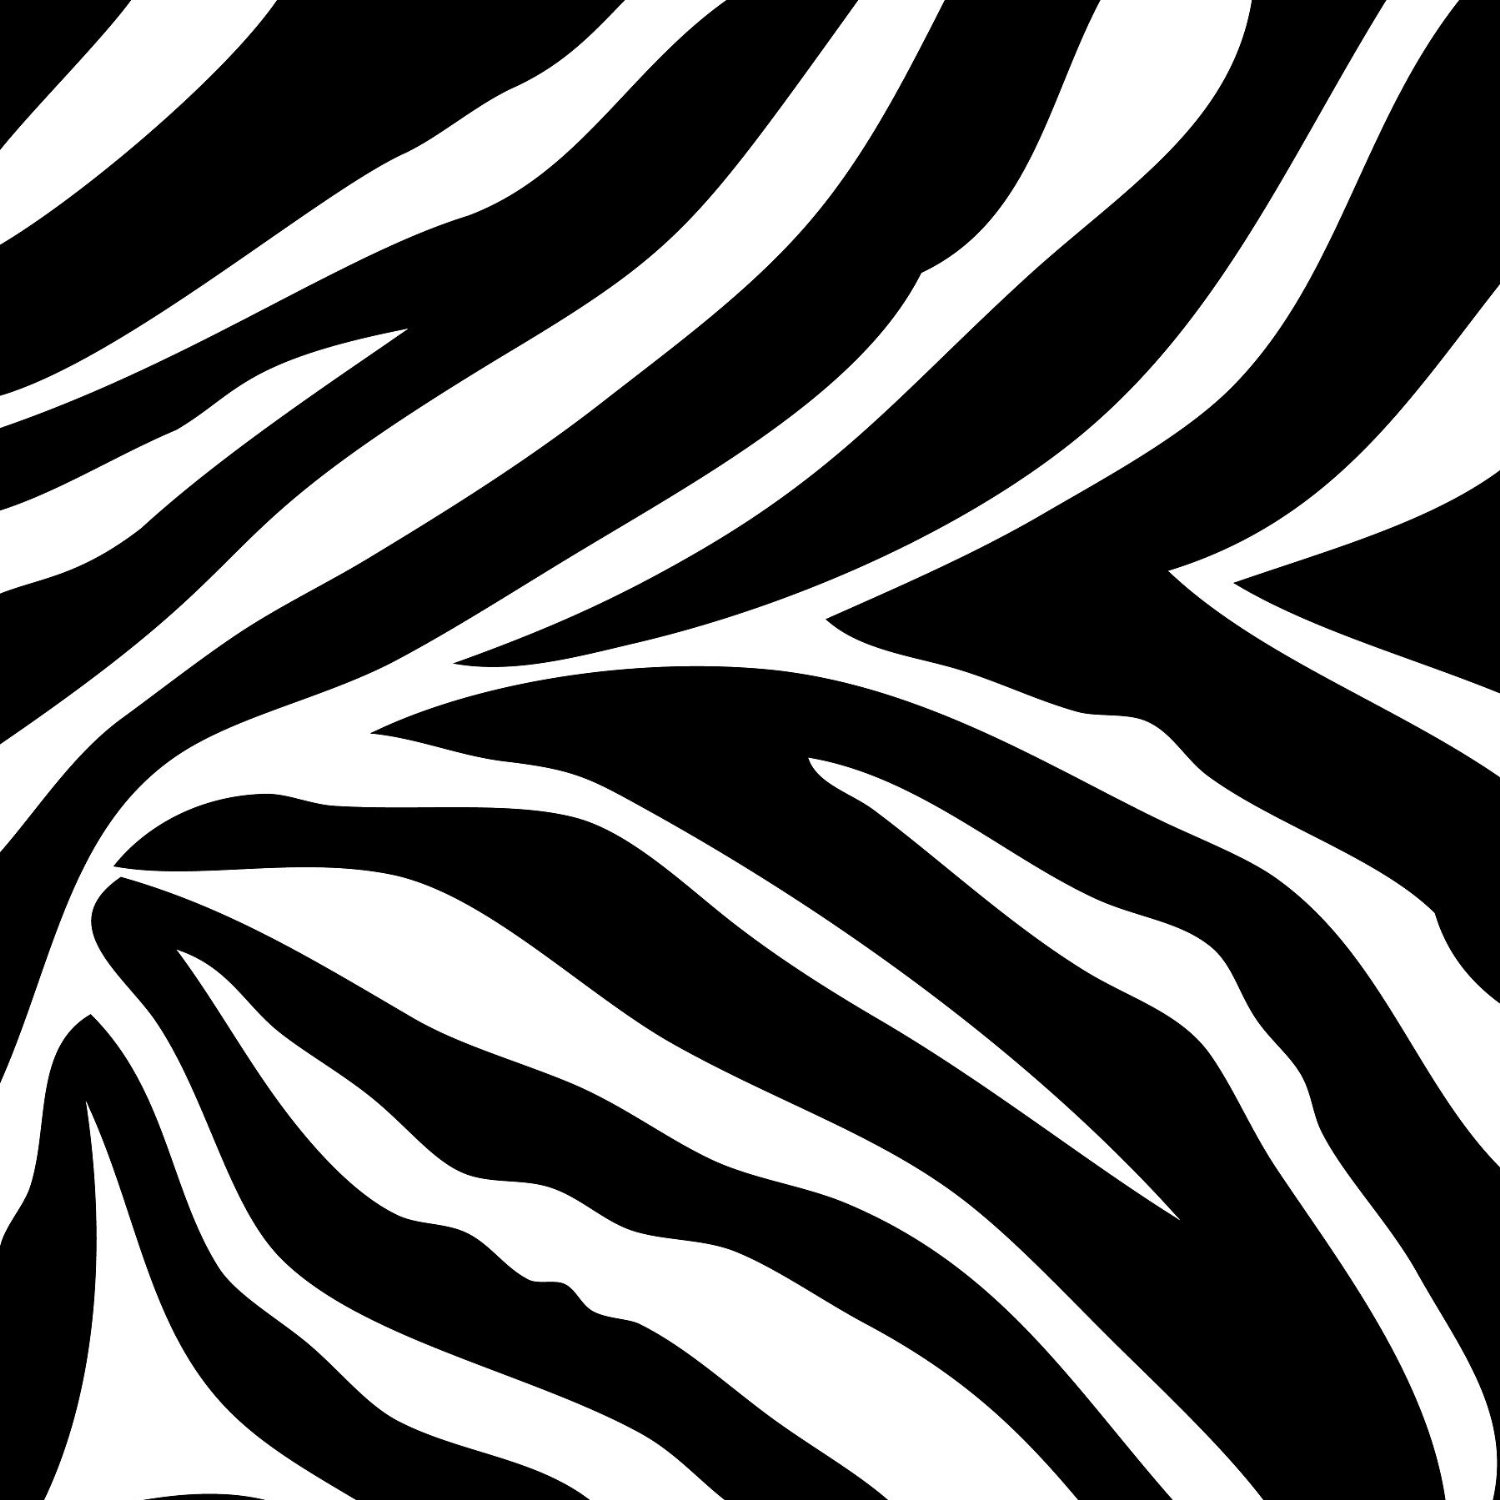 Zebra Print Wallpaper - Borders - Cutouts - Wallpaper & Border